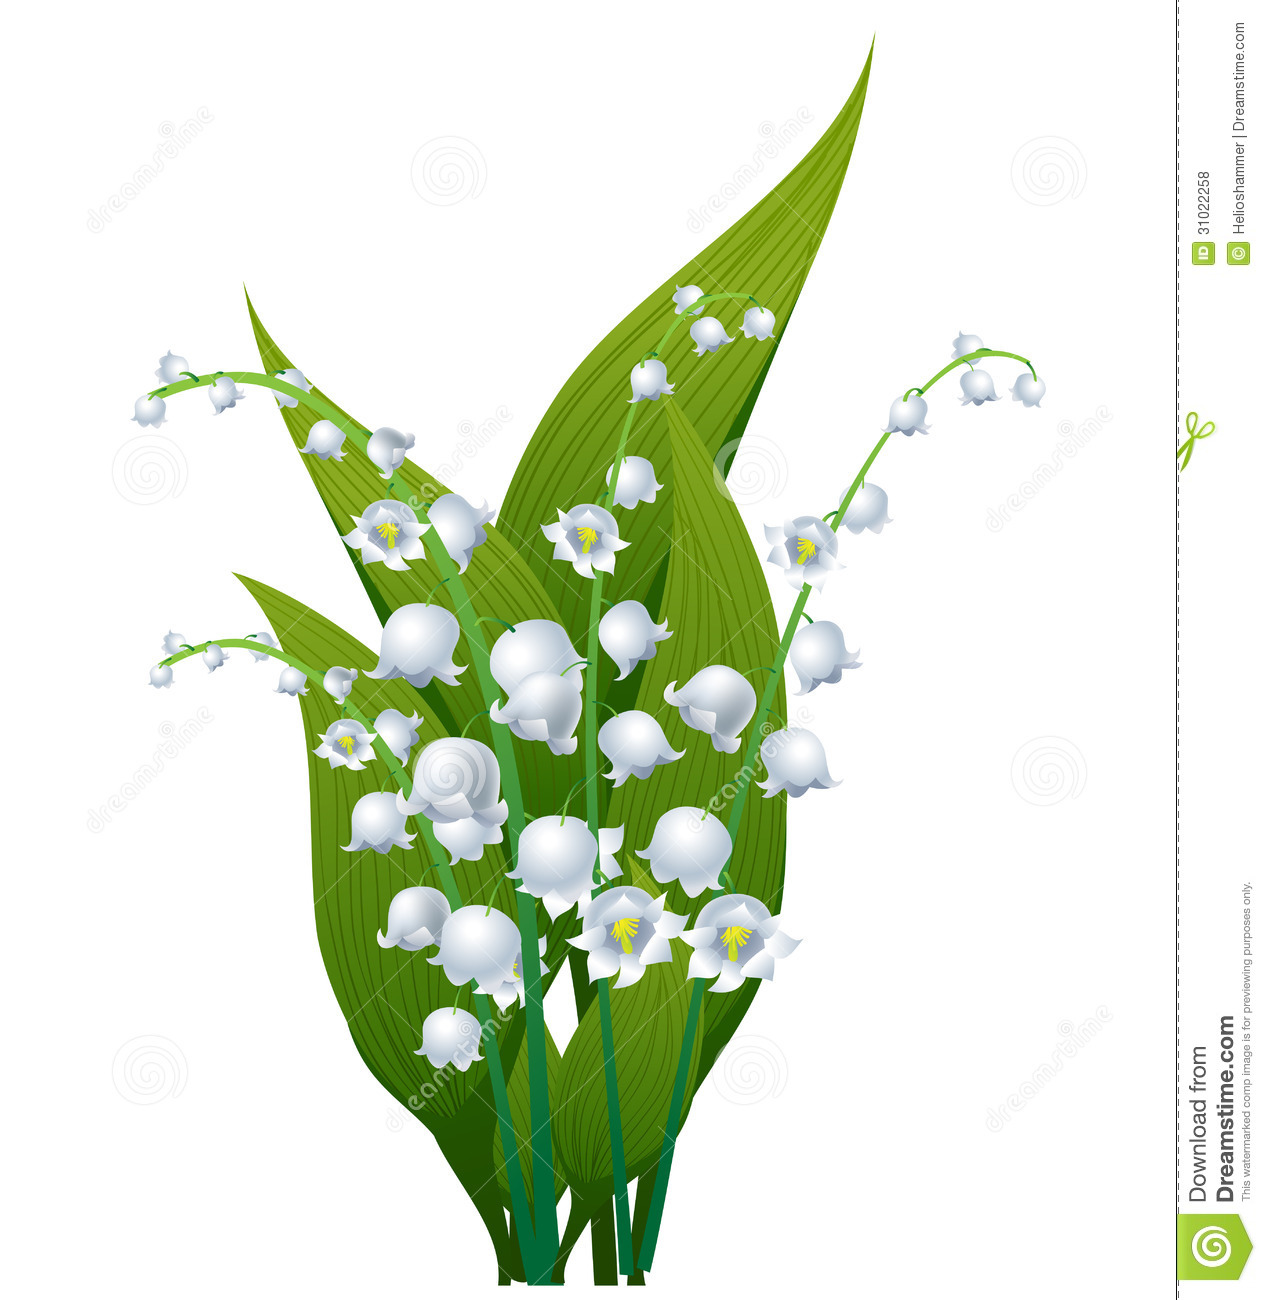 Lily of the valley stock vector. Illustration of floral ...